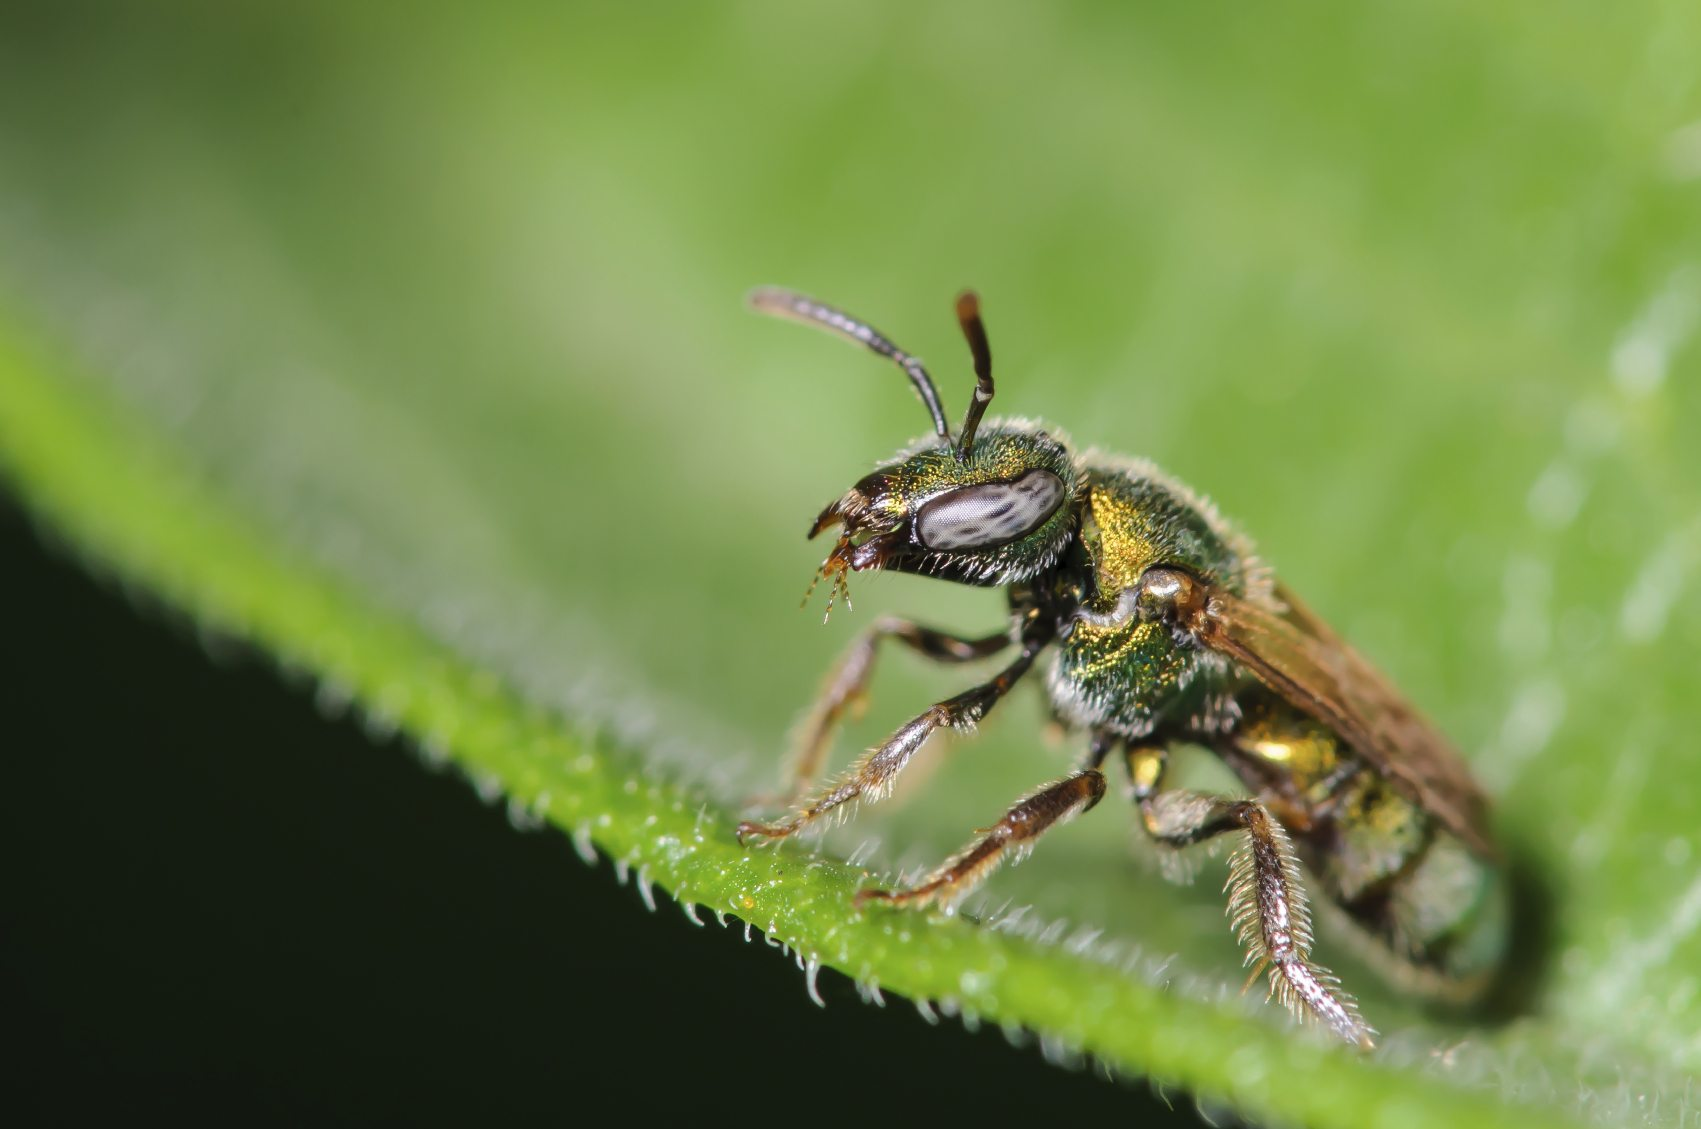 sweat bee behavior do sweat bees bite or sting